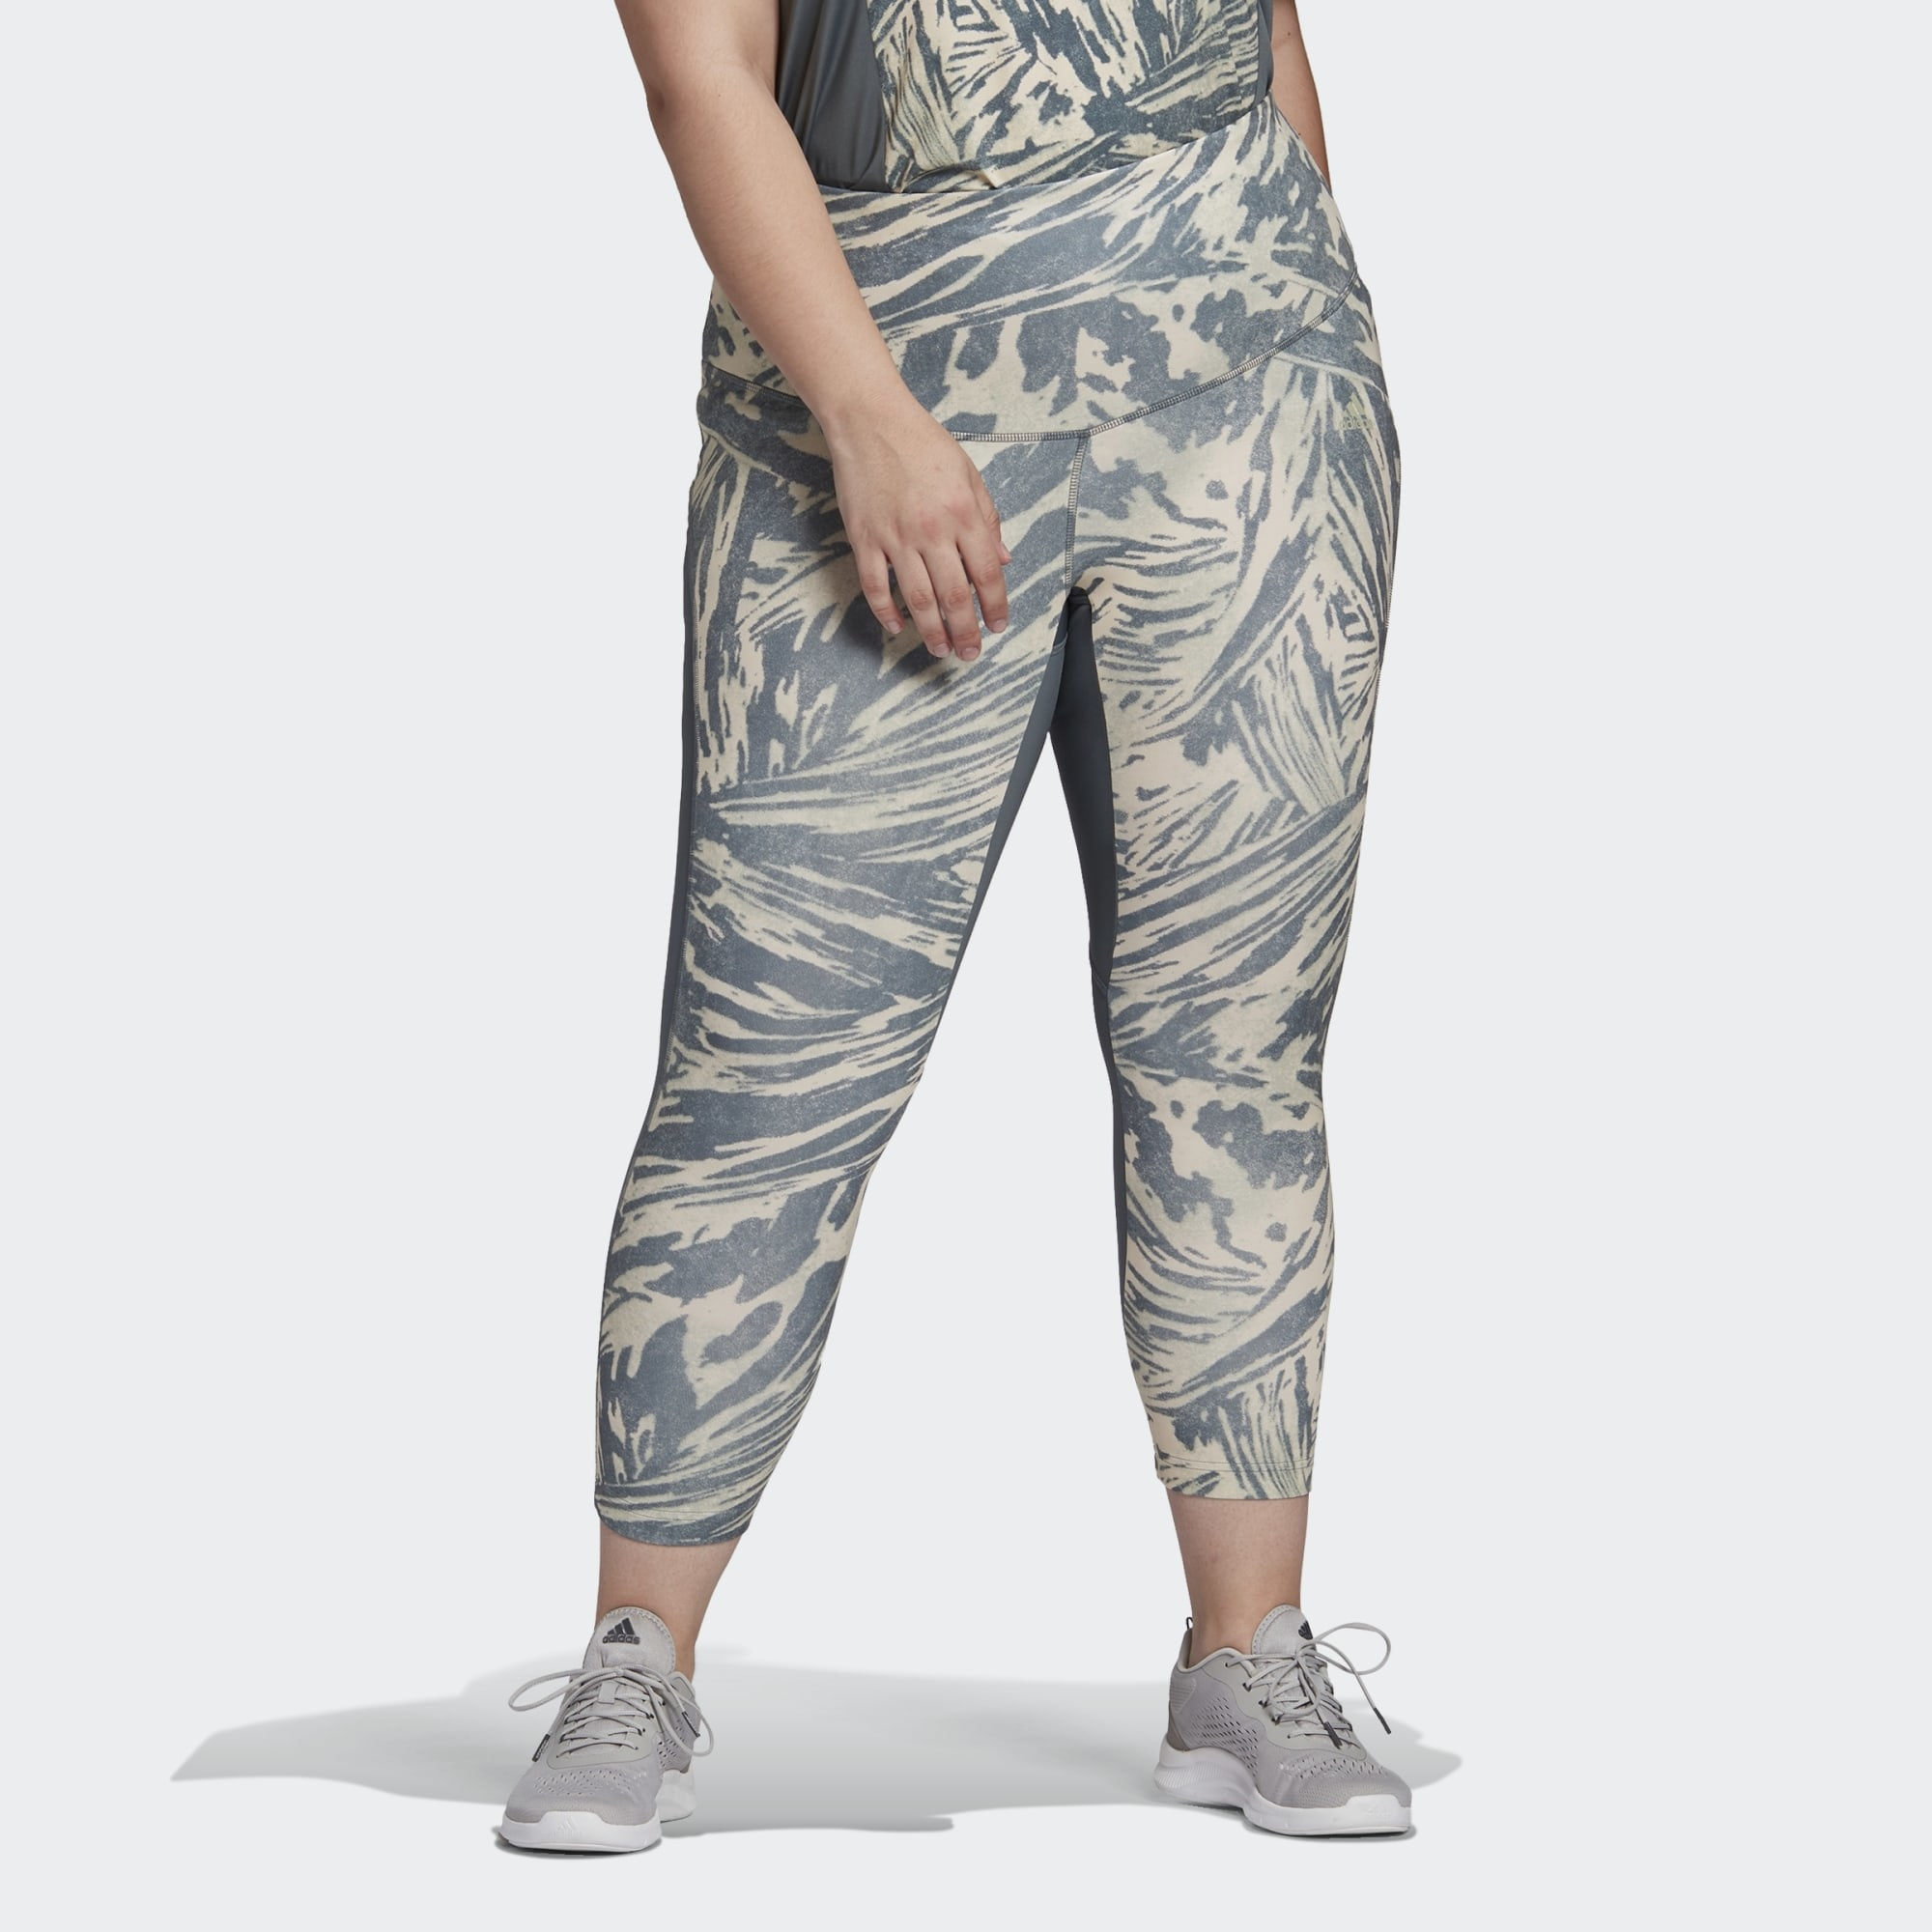 Model wearing pants with white and blue design on them